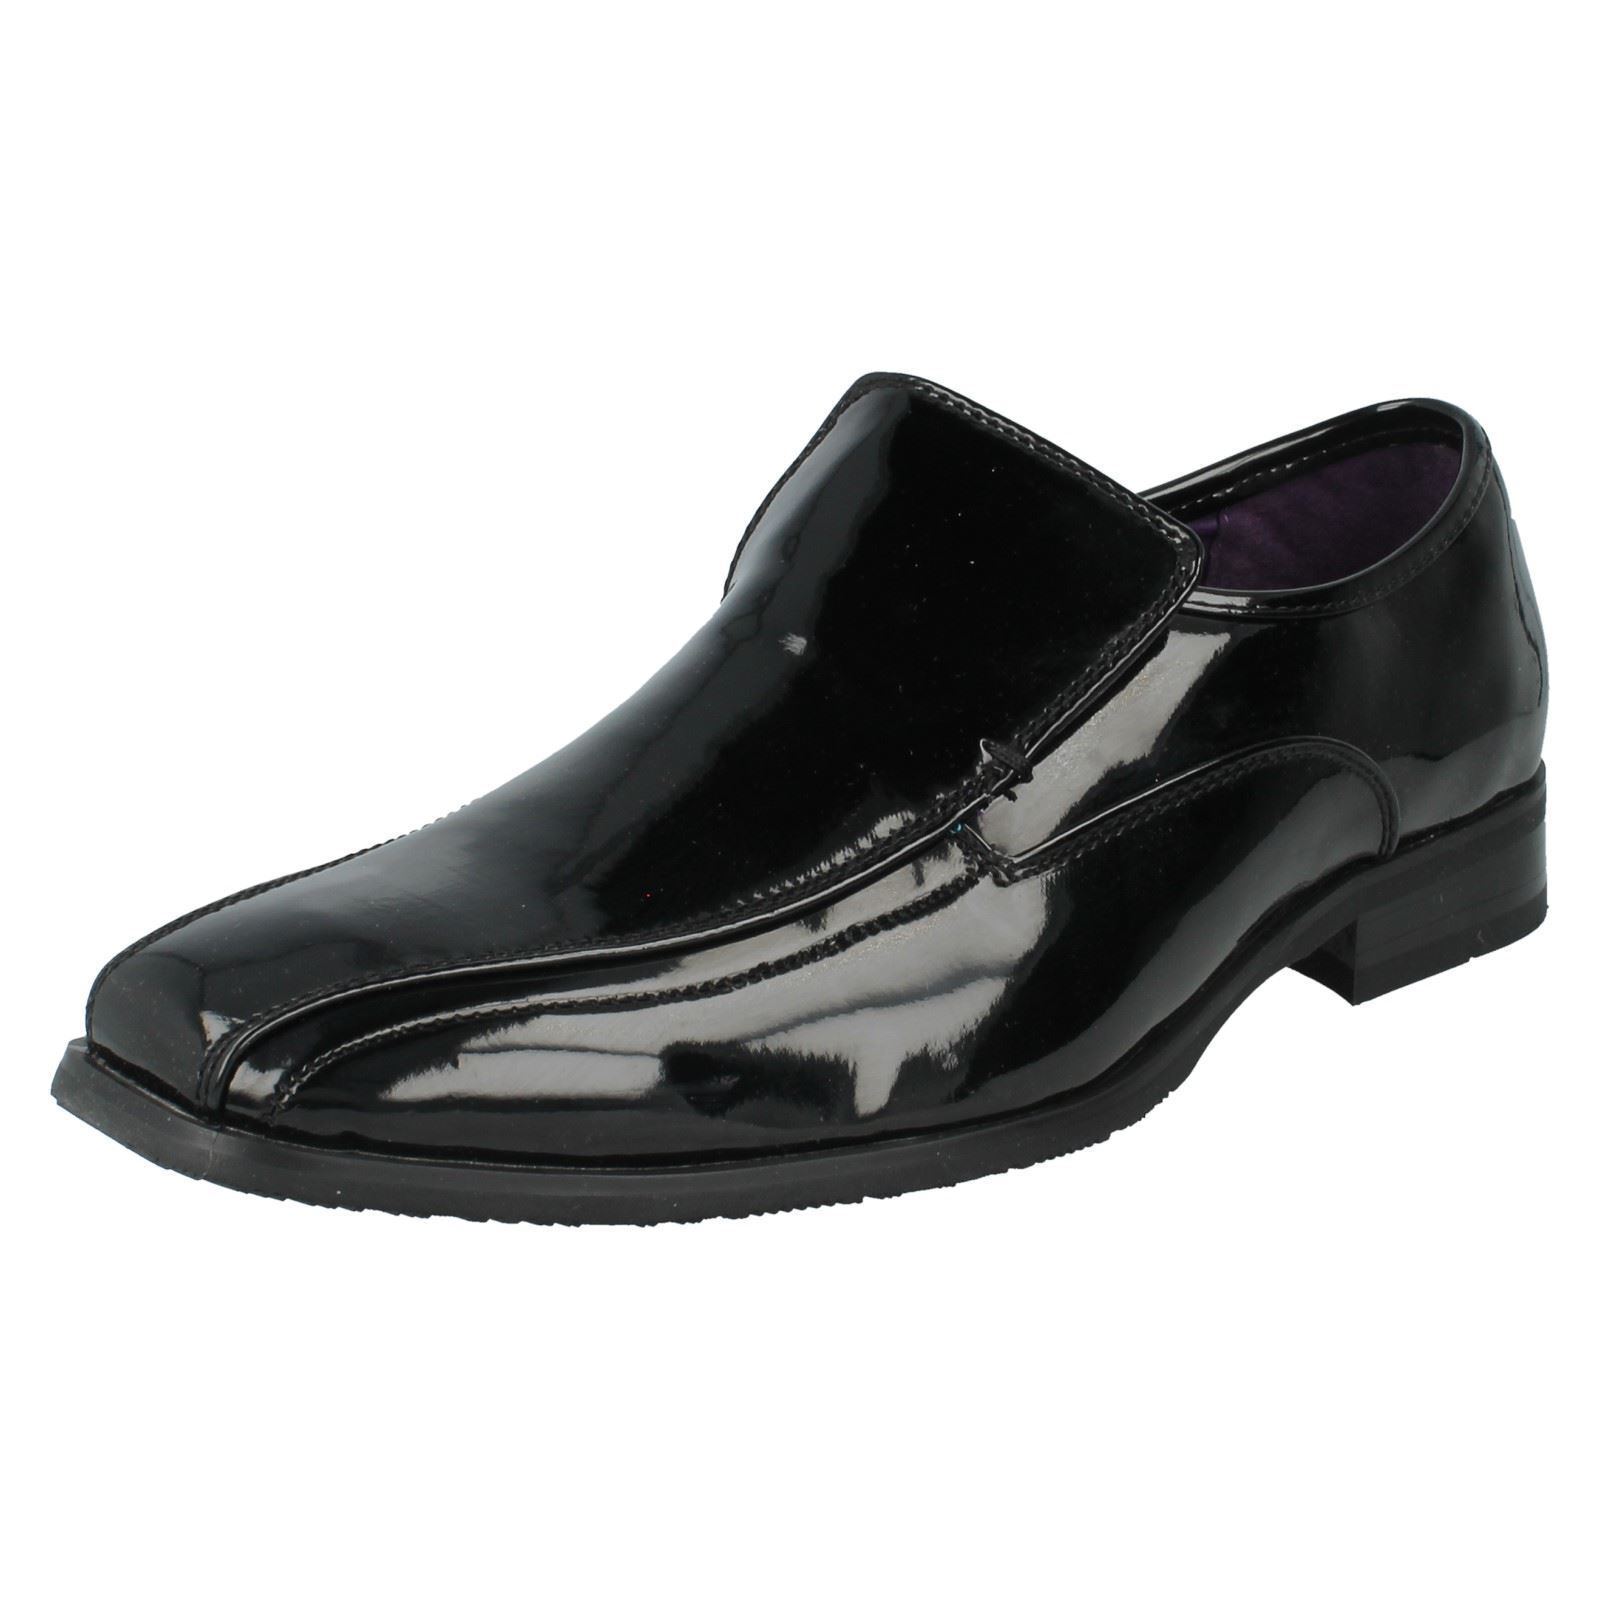 Mens Maverick Black Patent Sizes Slip On Shoes UK Sizes Patent 7 - 11 A1094 ddd324